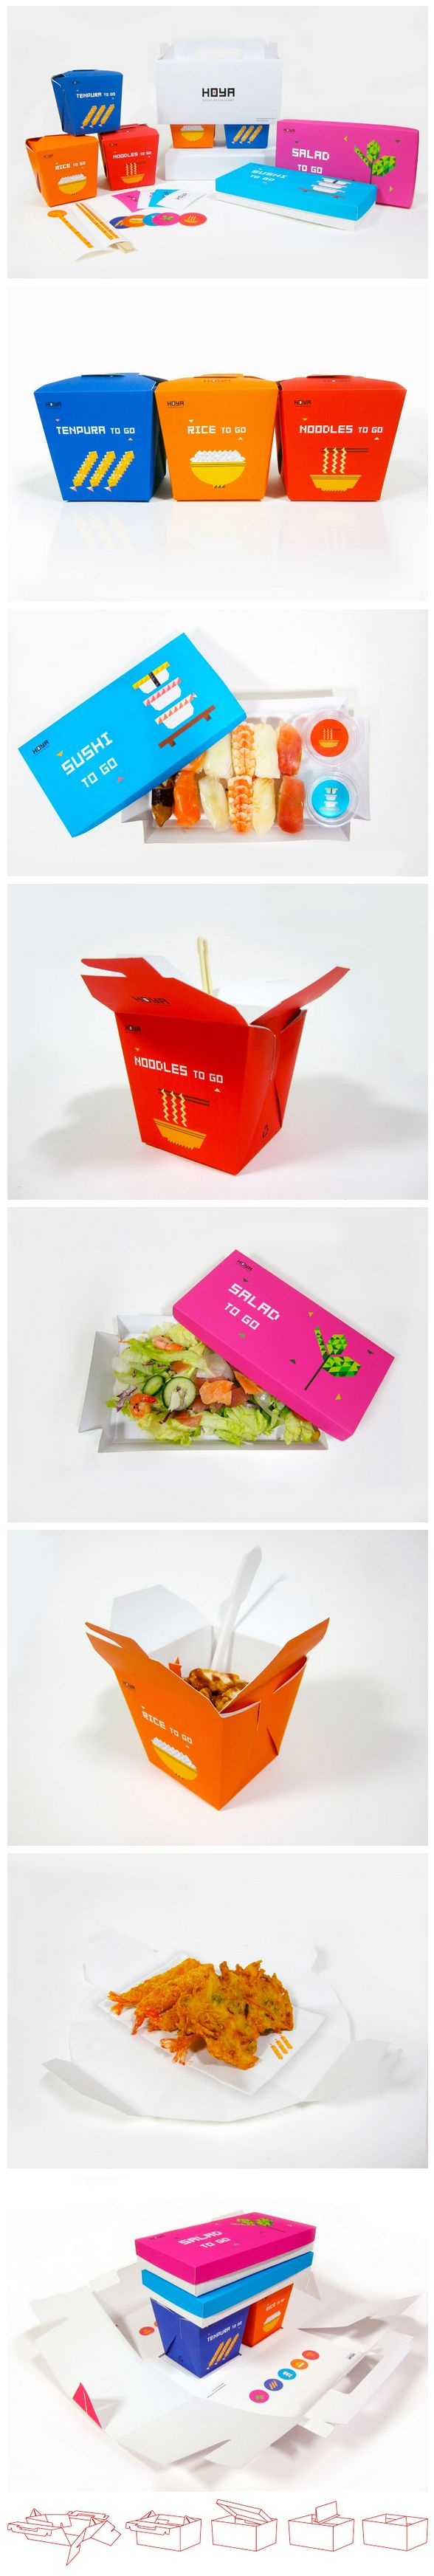 HOYA is a famous Japanese restaurant near some universities in Seoul, Korea. Danbi Yu, Let's have lunch with sweet take-away color #packaging to go : ) PD